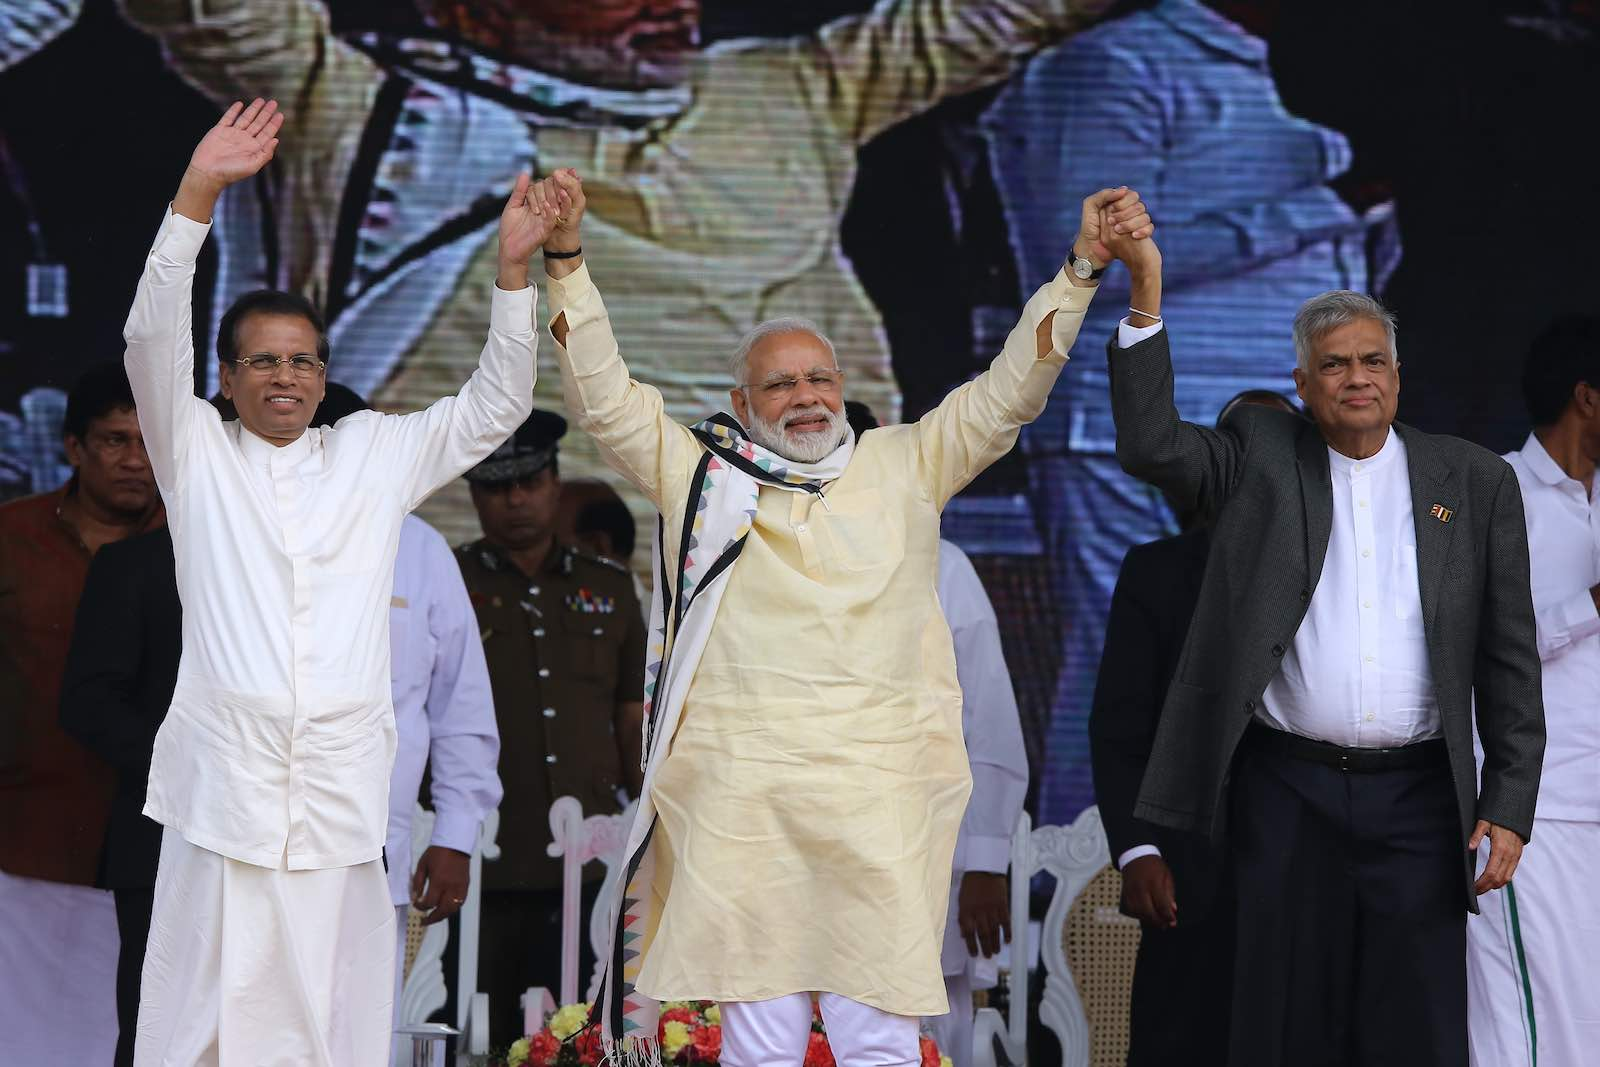 Indian Prime Minister Narendra Modi (centre) with Sri Lankan President Maithripala Sirisena (L) and Sri Lankan Prime Minister Ranil Wickremesinghe during a rally in Norwood, Sri Lanka, May 2017 (Photo: Tharaka Basnayaka via Getty)